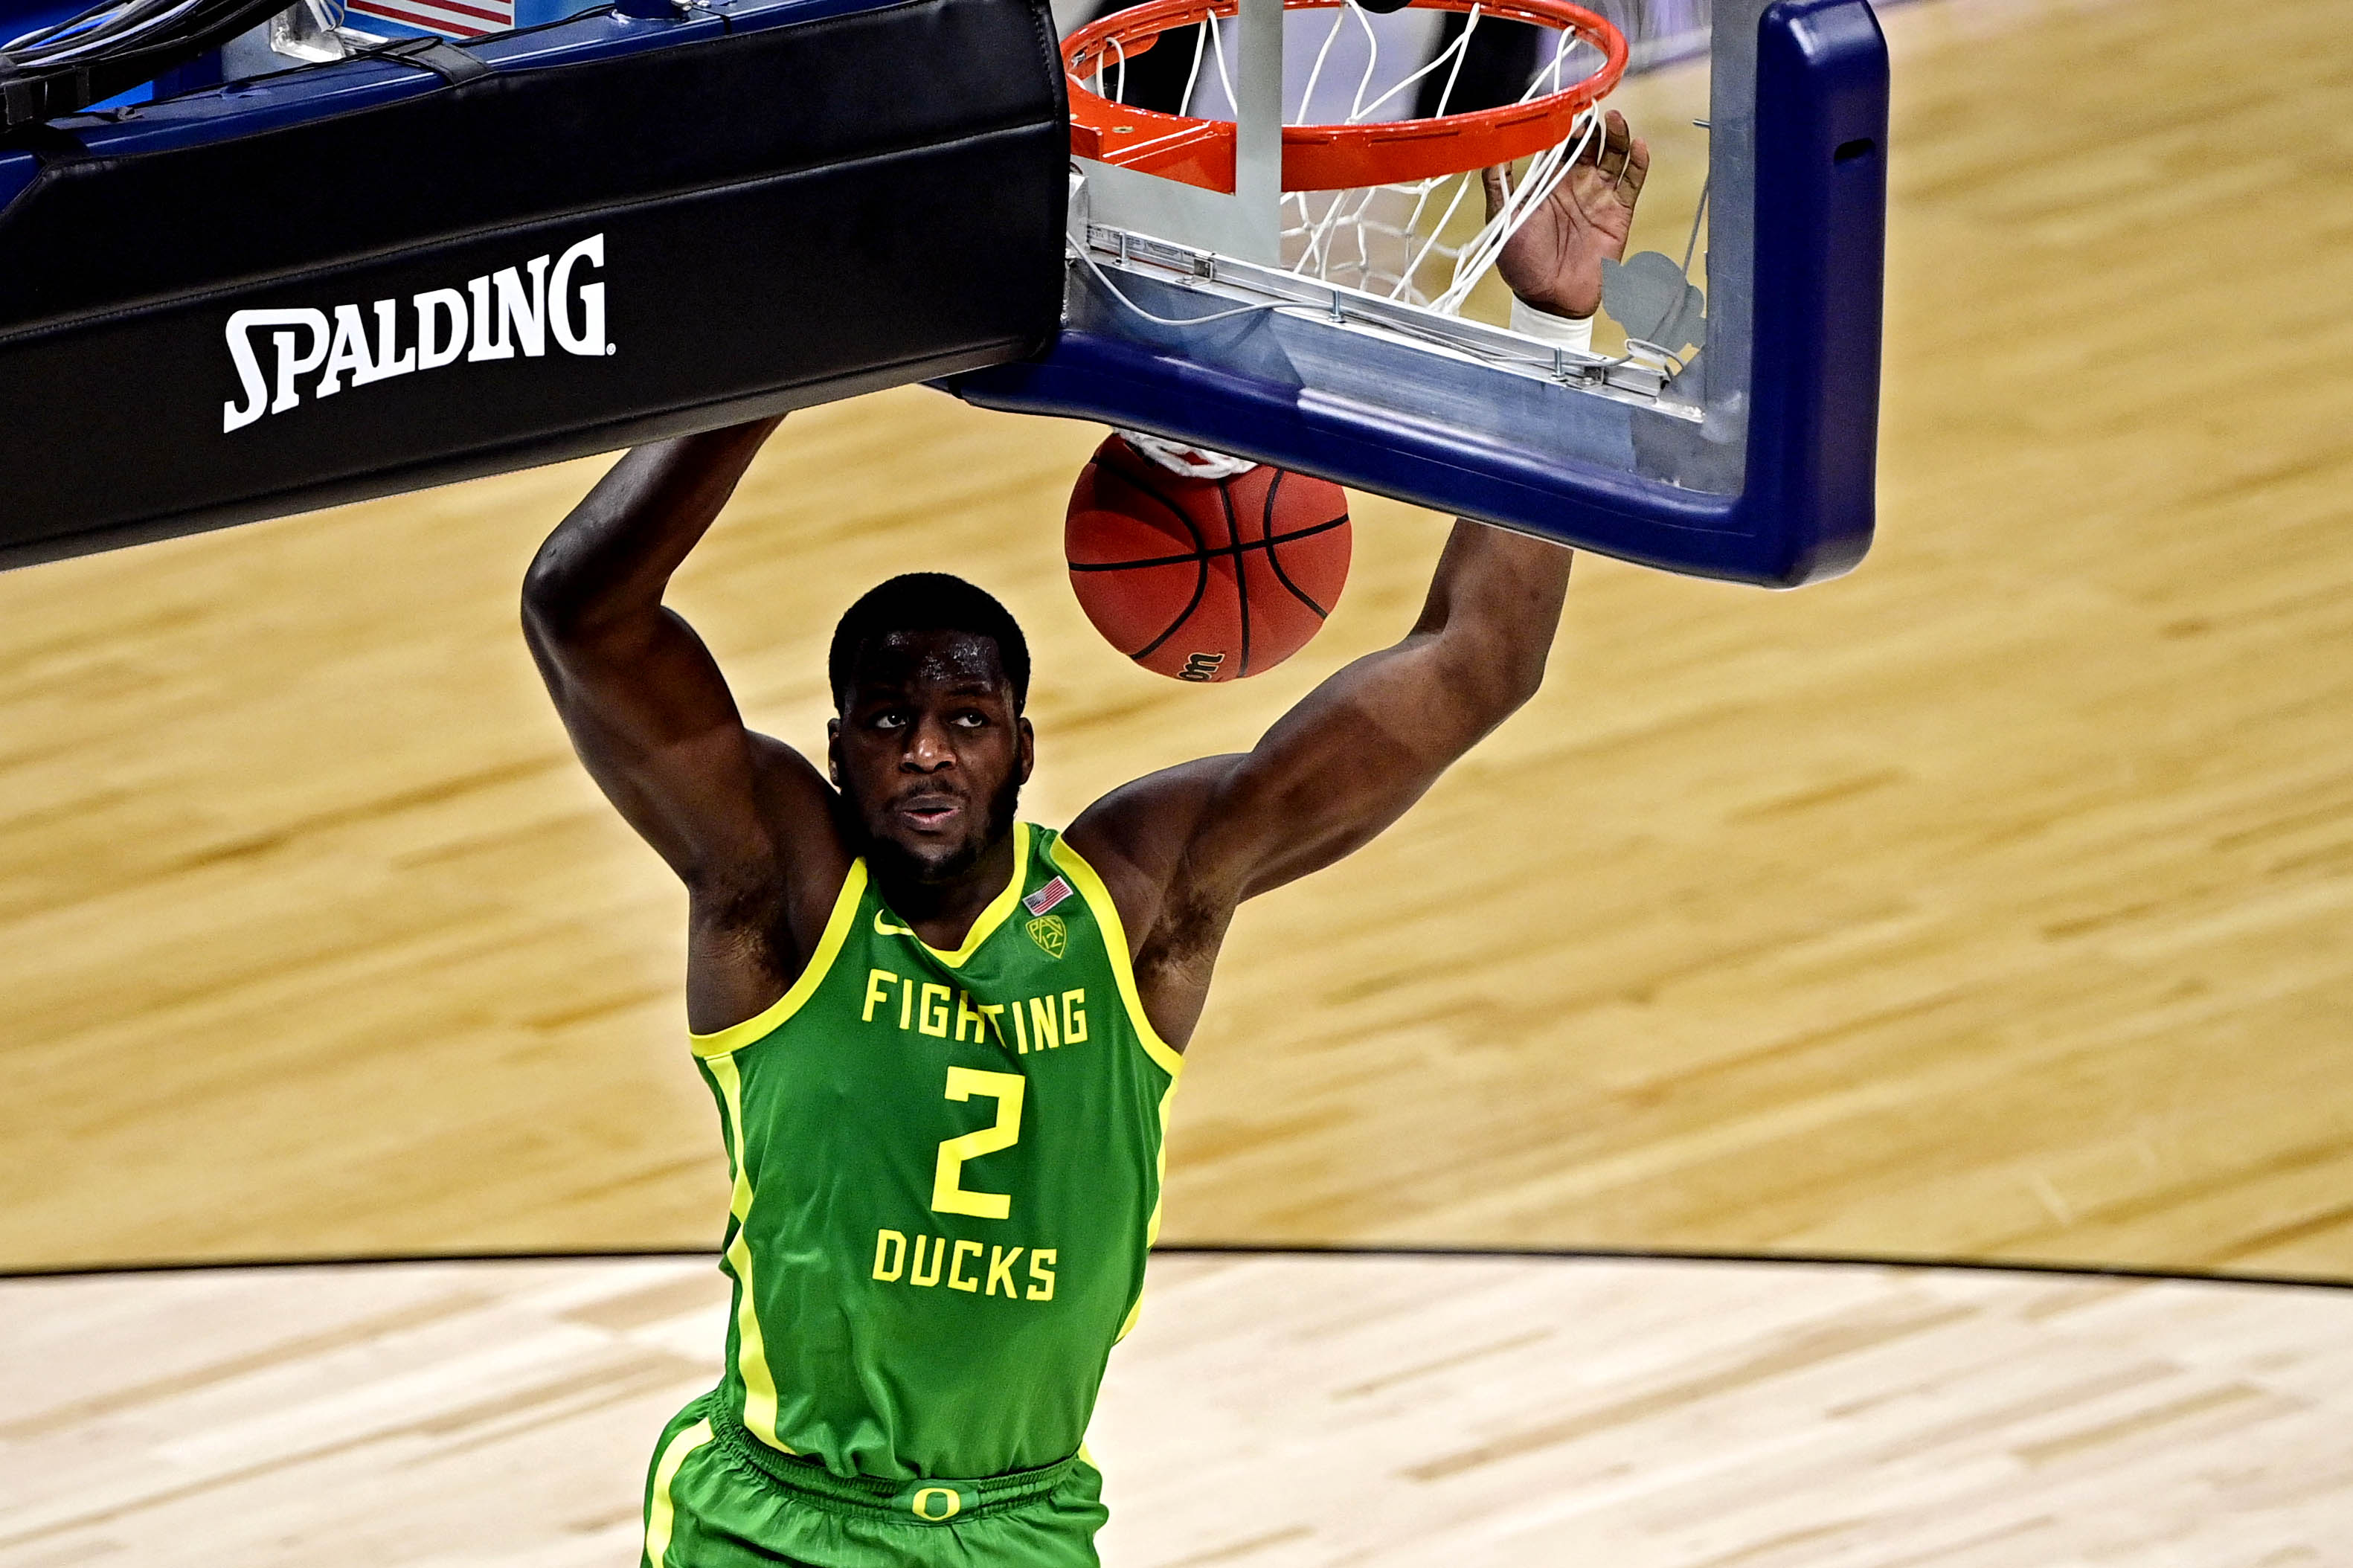 Mar 28, 2021; Indianapolis, Indiana, USA; Oregon Ducks forward Eugene Omoruyi (2) dunks the ball during the first half against the USC Trojans in the Sweet Sixteen of the 2021 NCAA Tournament at Bankers Life Fieldhouse.